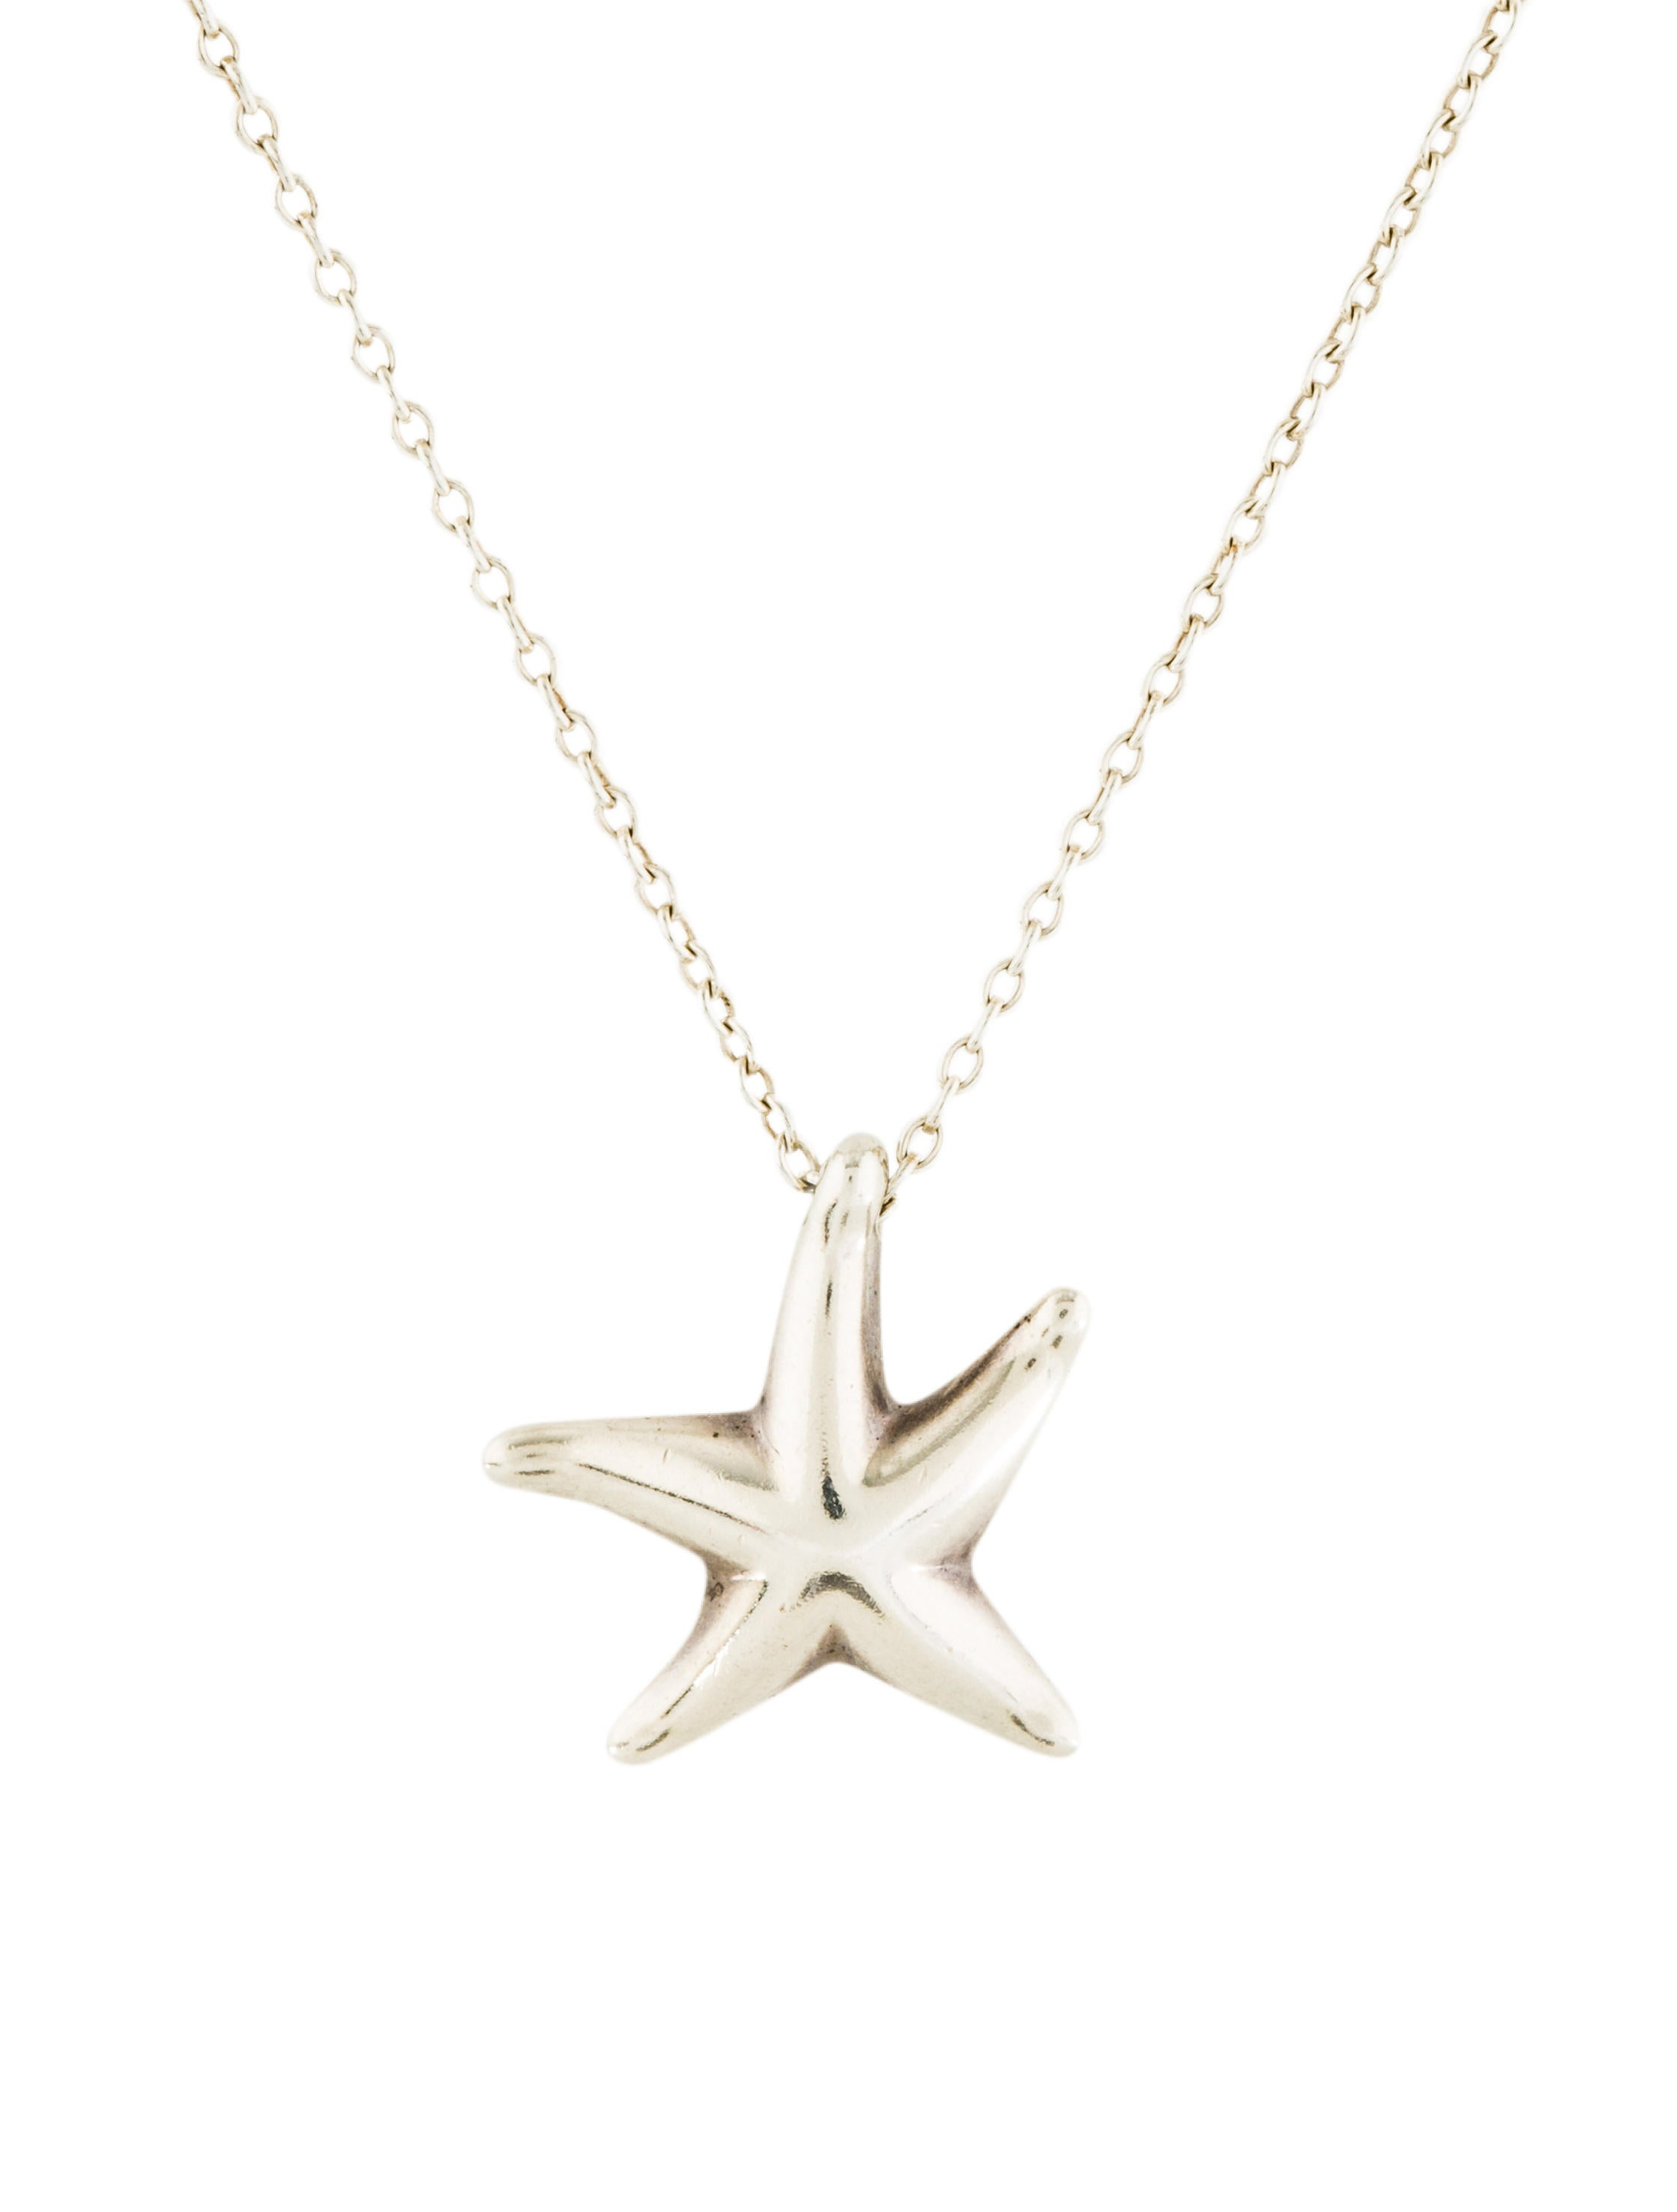 Tiffany co starfish pendant necklace necklaces tif75176 the starfish pendant necklace aloadofball Images